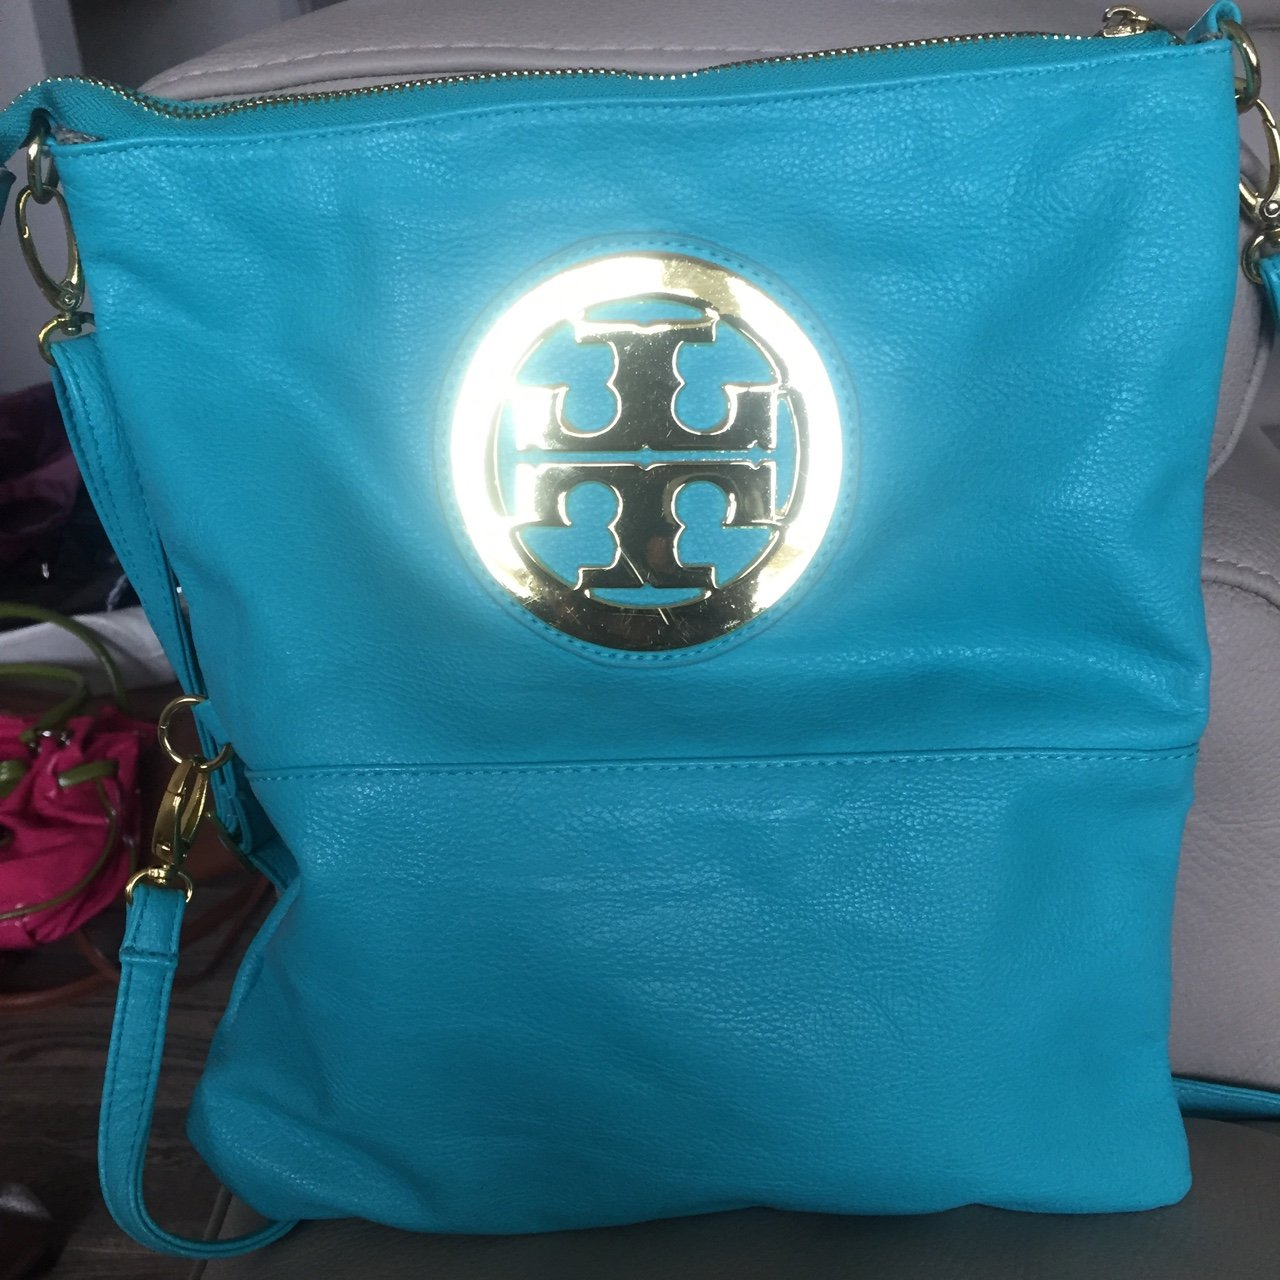 7976731bc104 Tory burch mint side bag used a couple times . Great willing - Depop